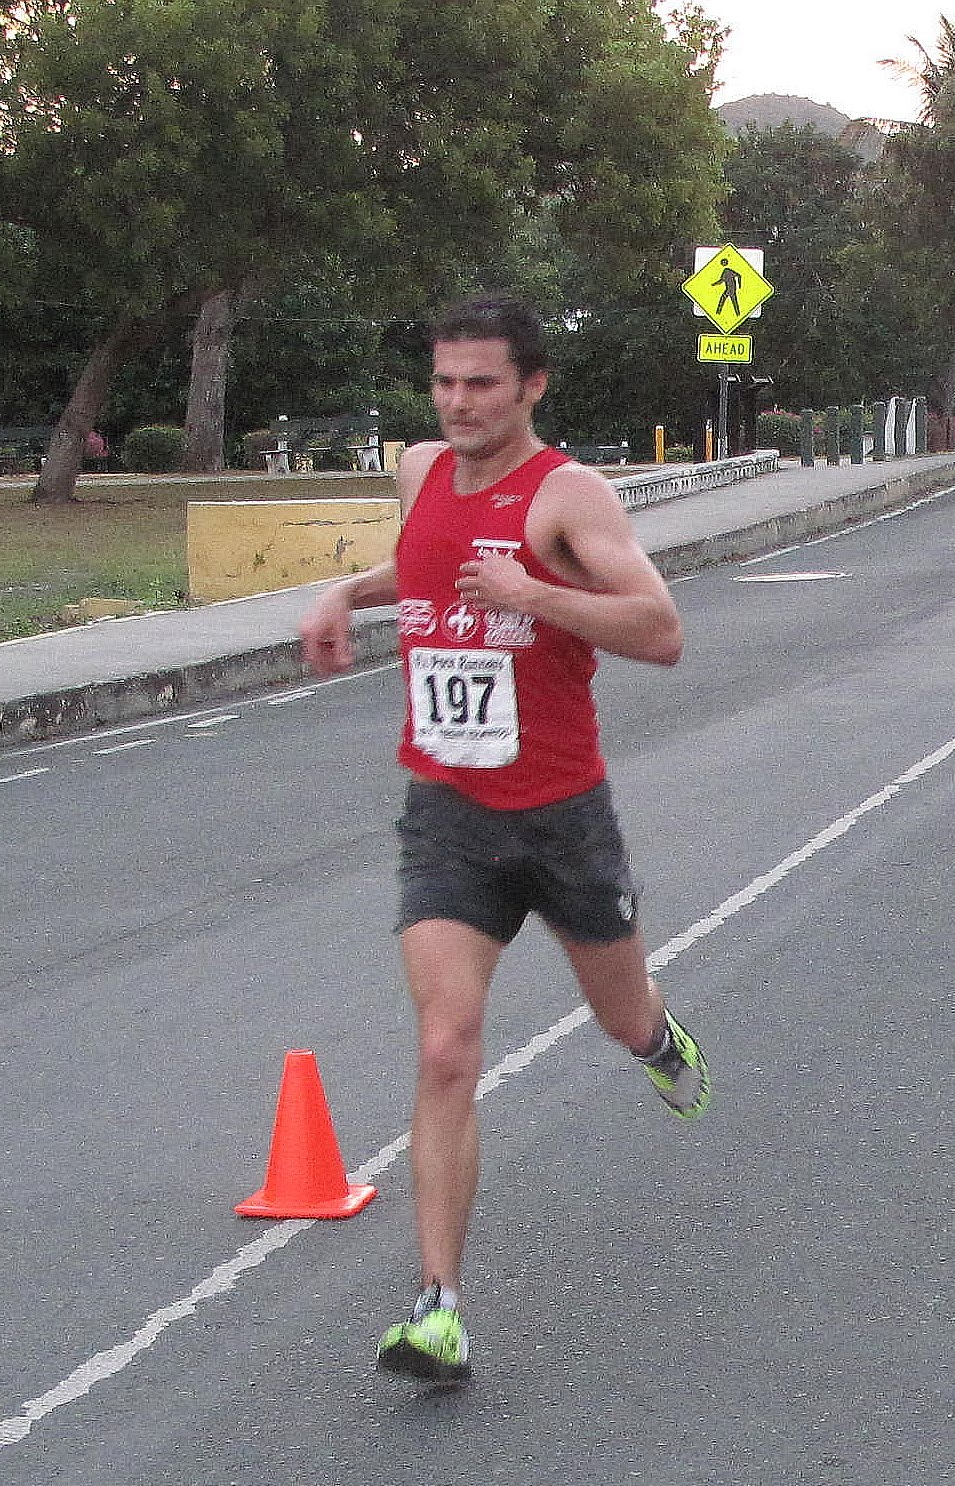 Nick Arcardo, winner of the 29th Annual Toast-To-The-Captain Road Race